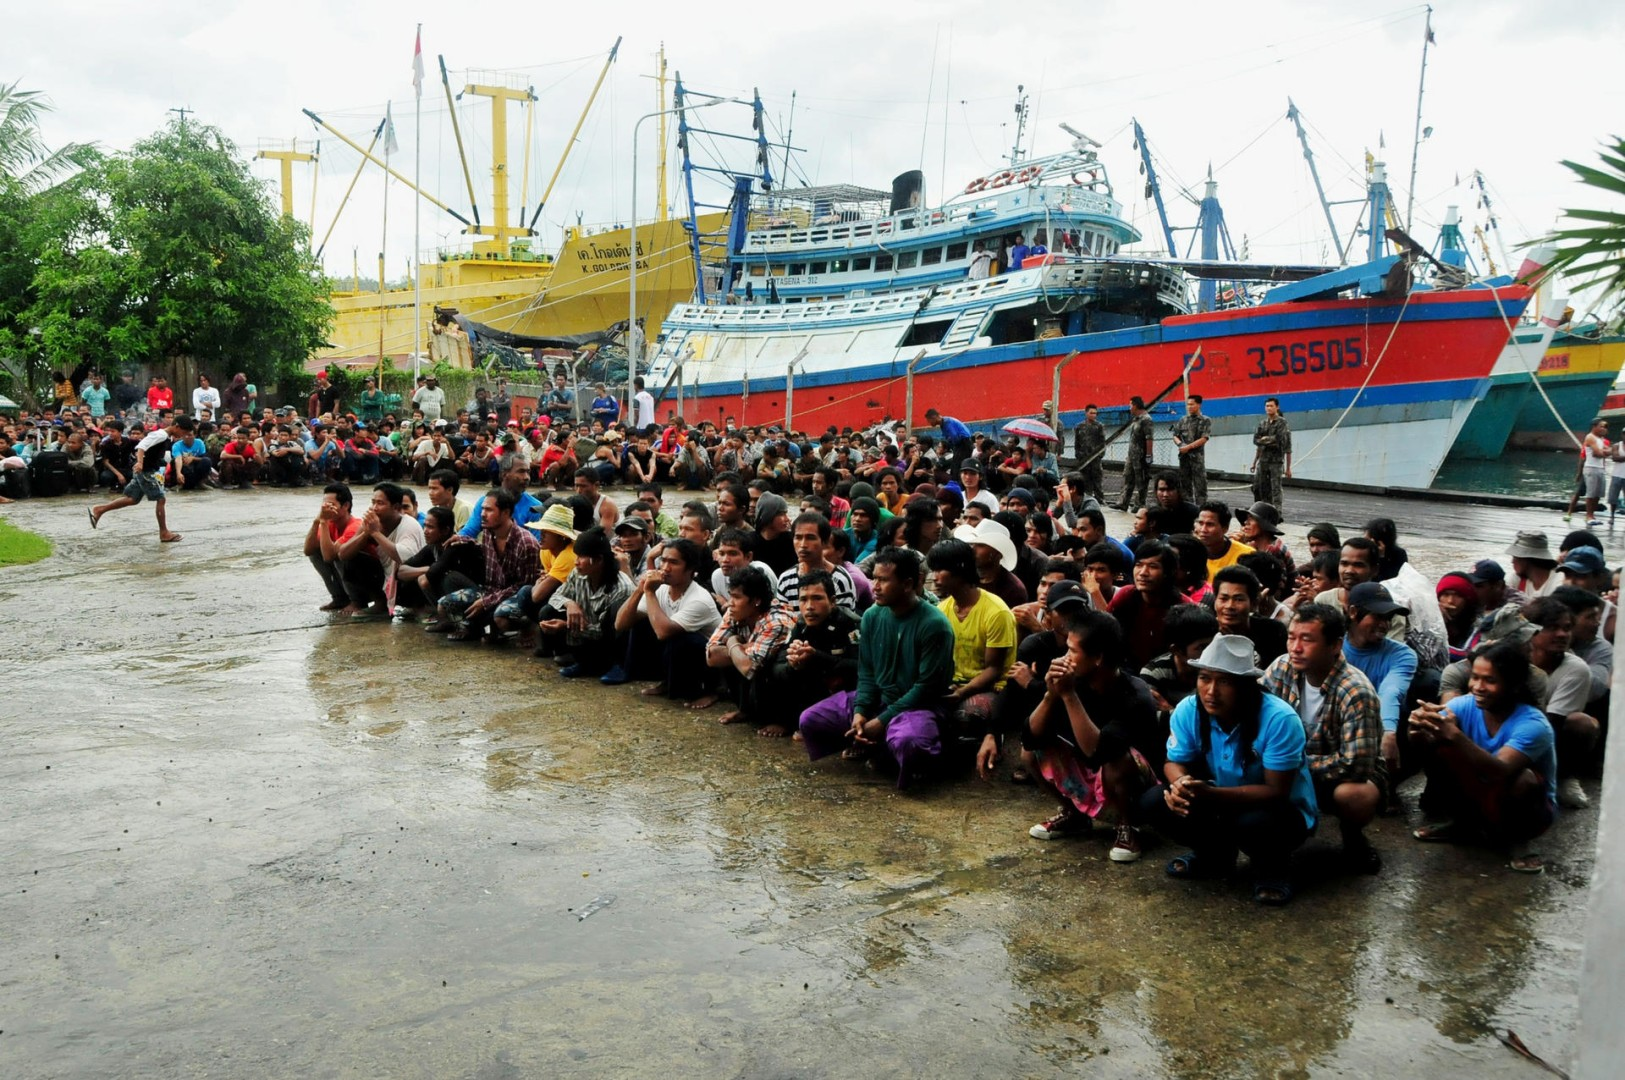 Slavery at sea: human trafficking in the fishing industry